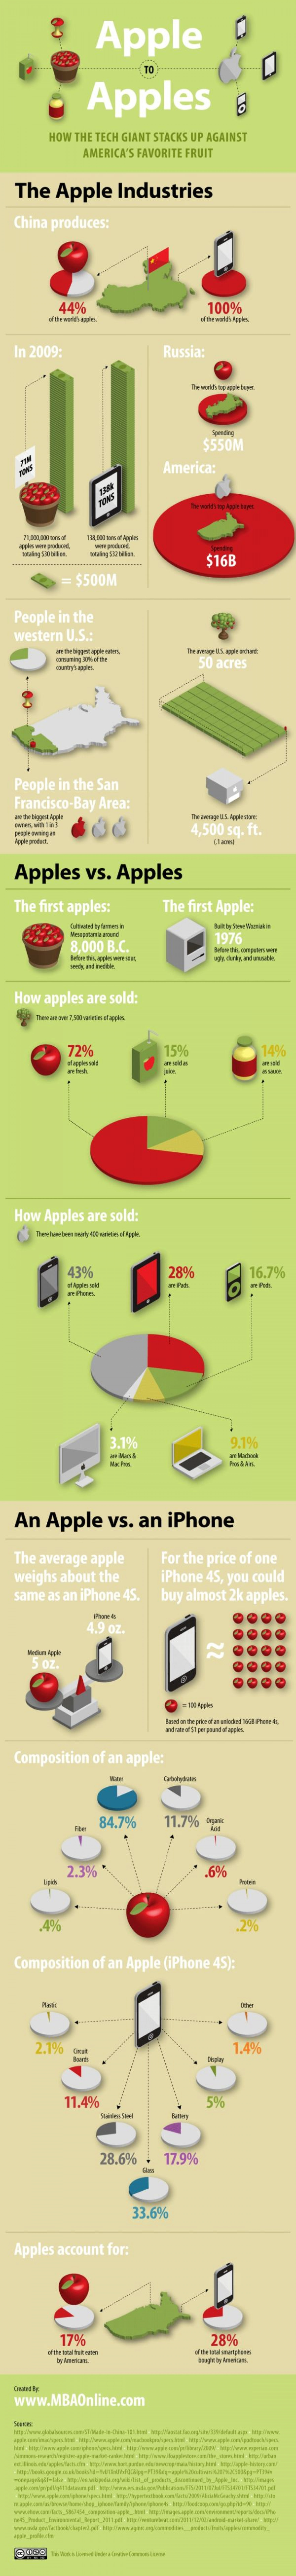 Apple to Apples Infographic